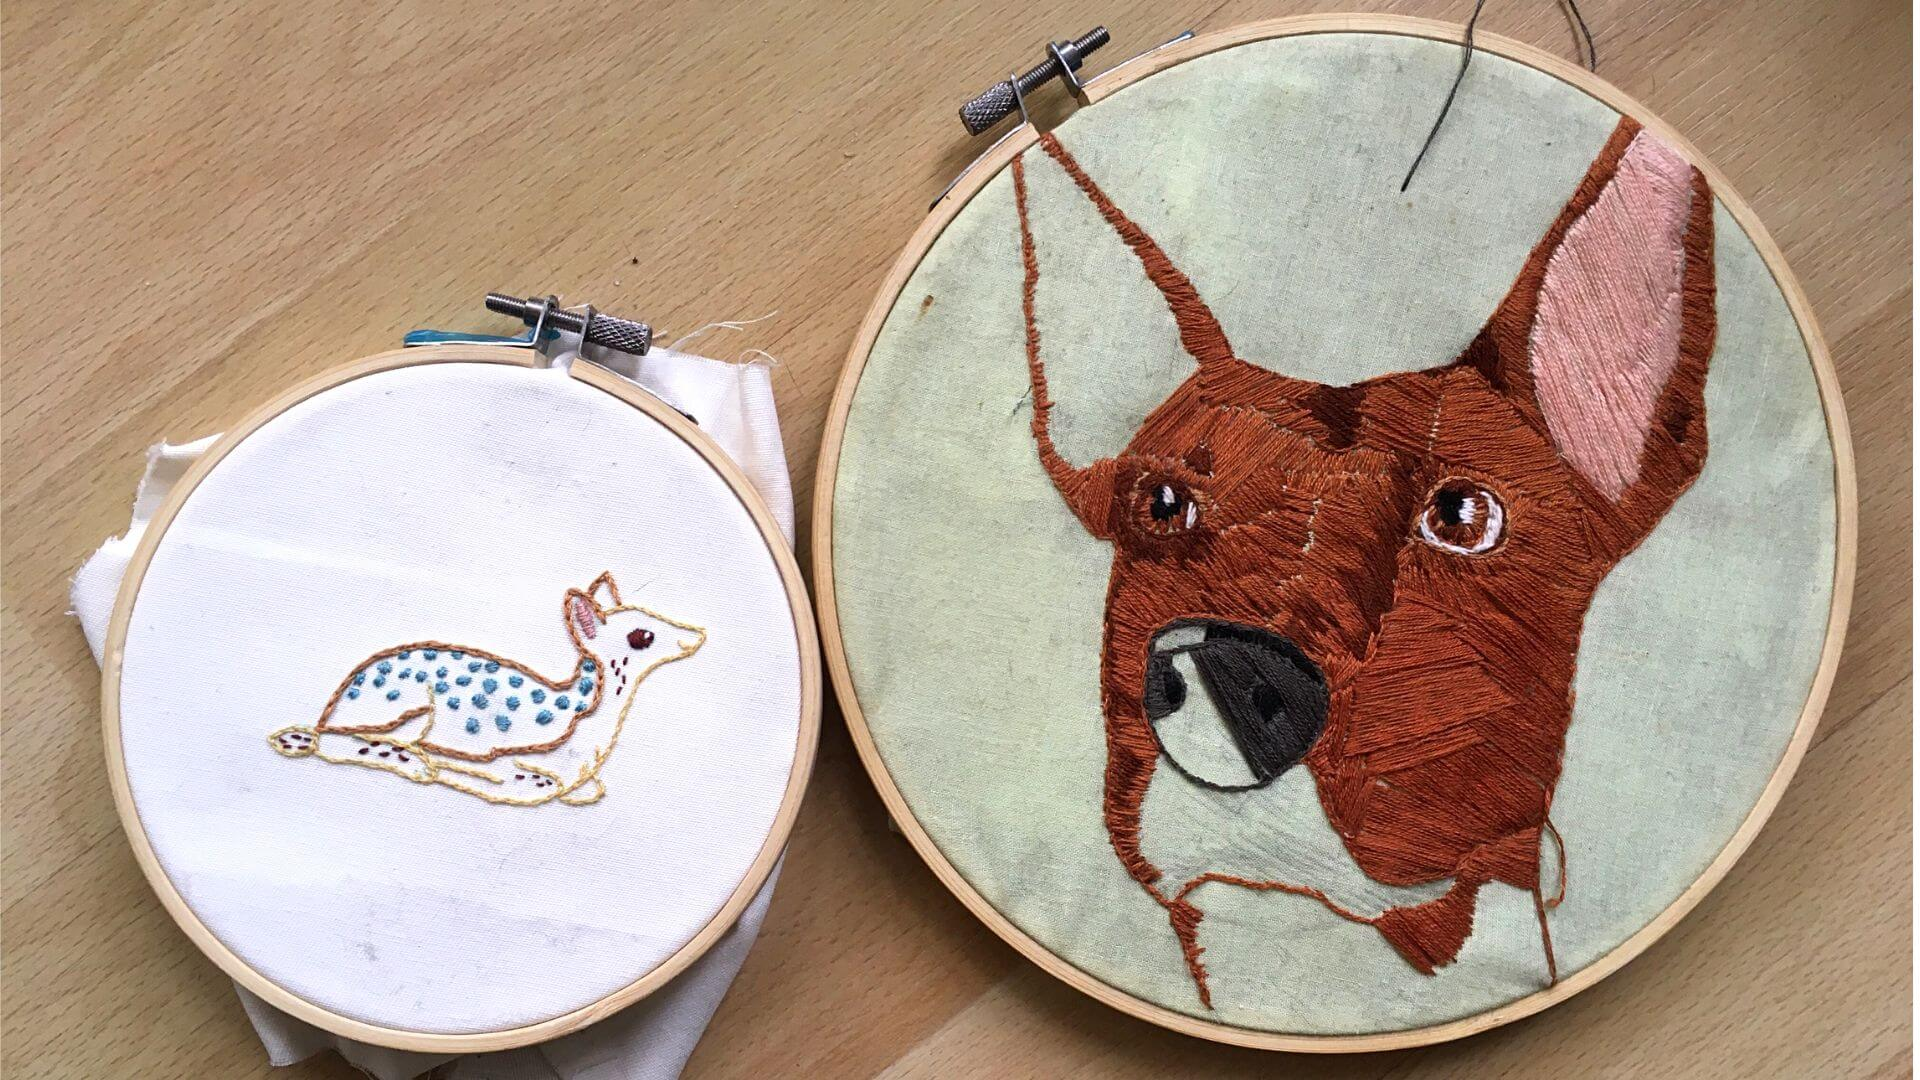 A deer and dog made using different embroidery techniques